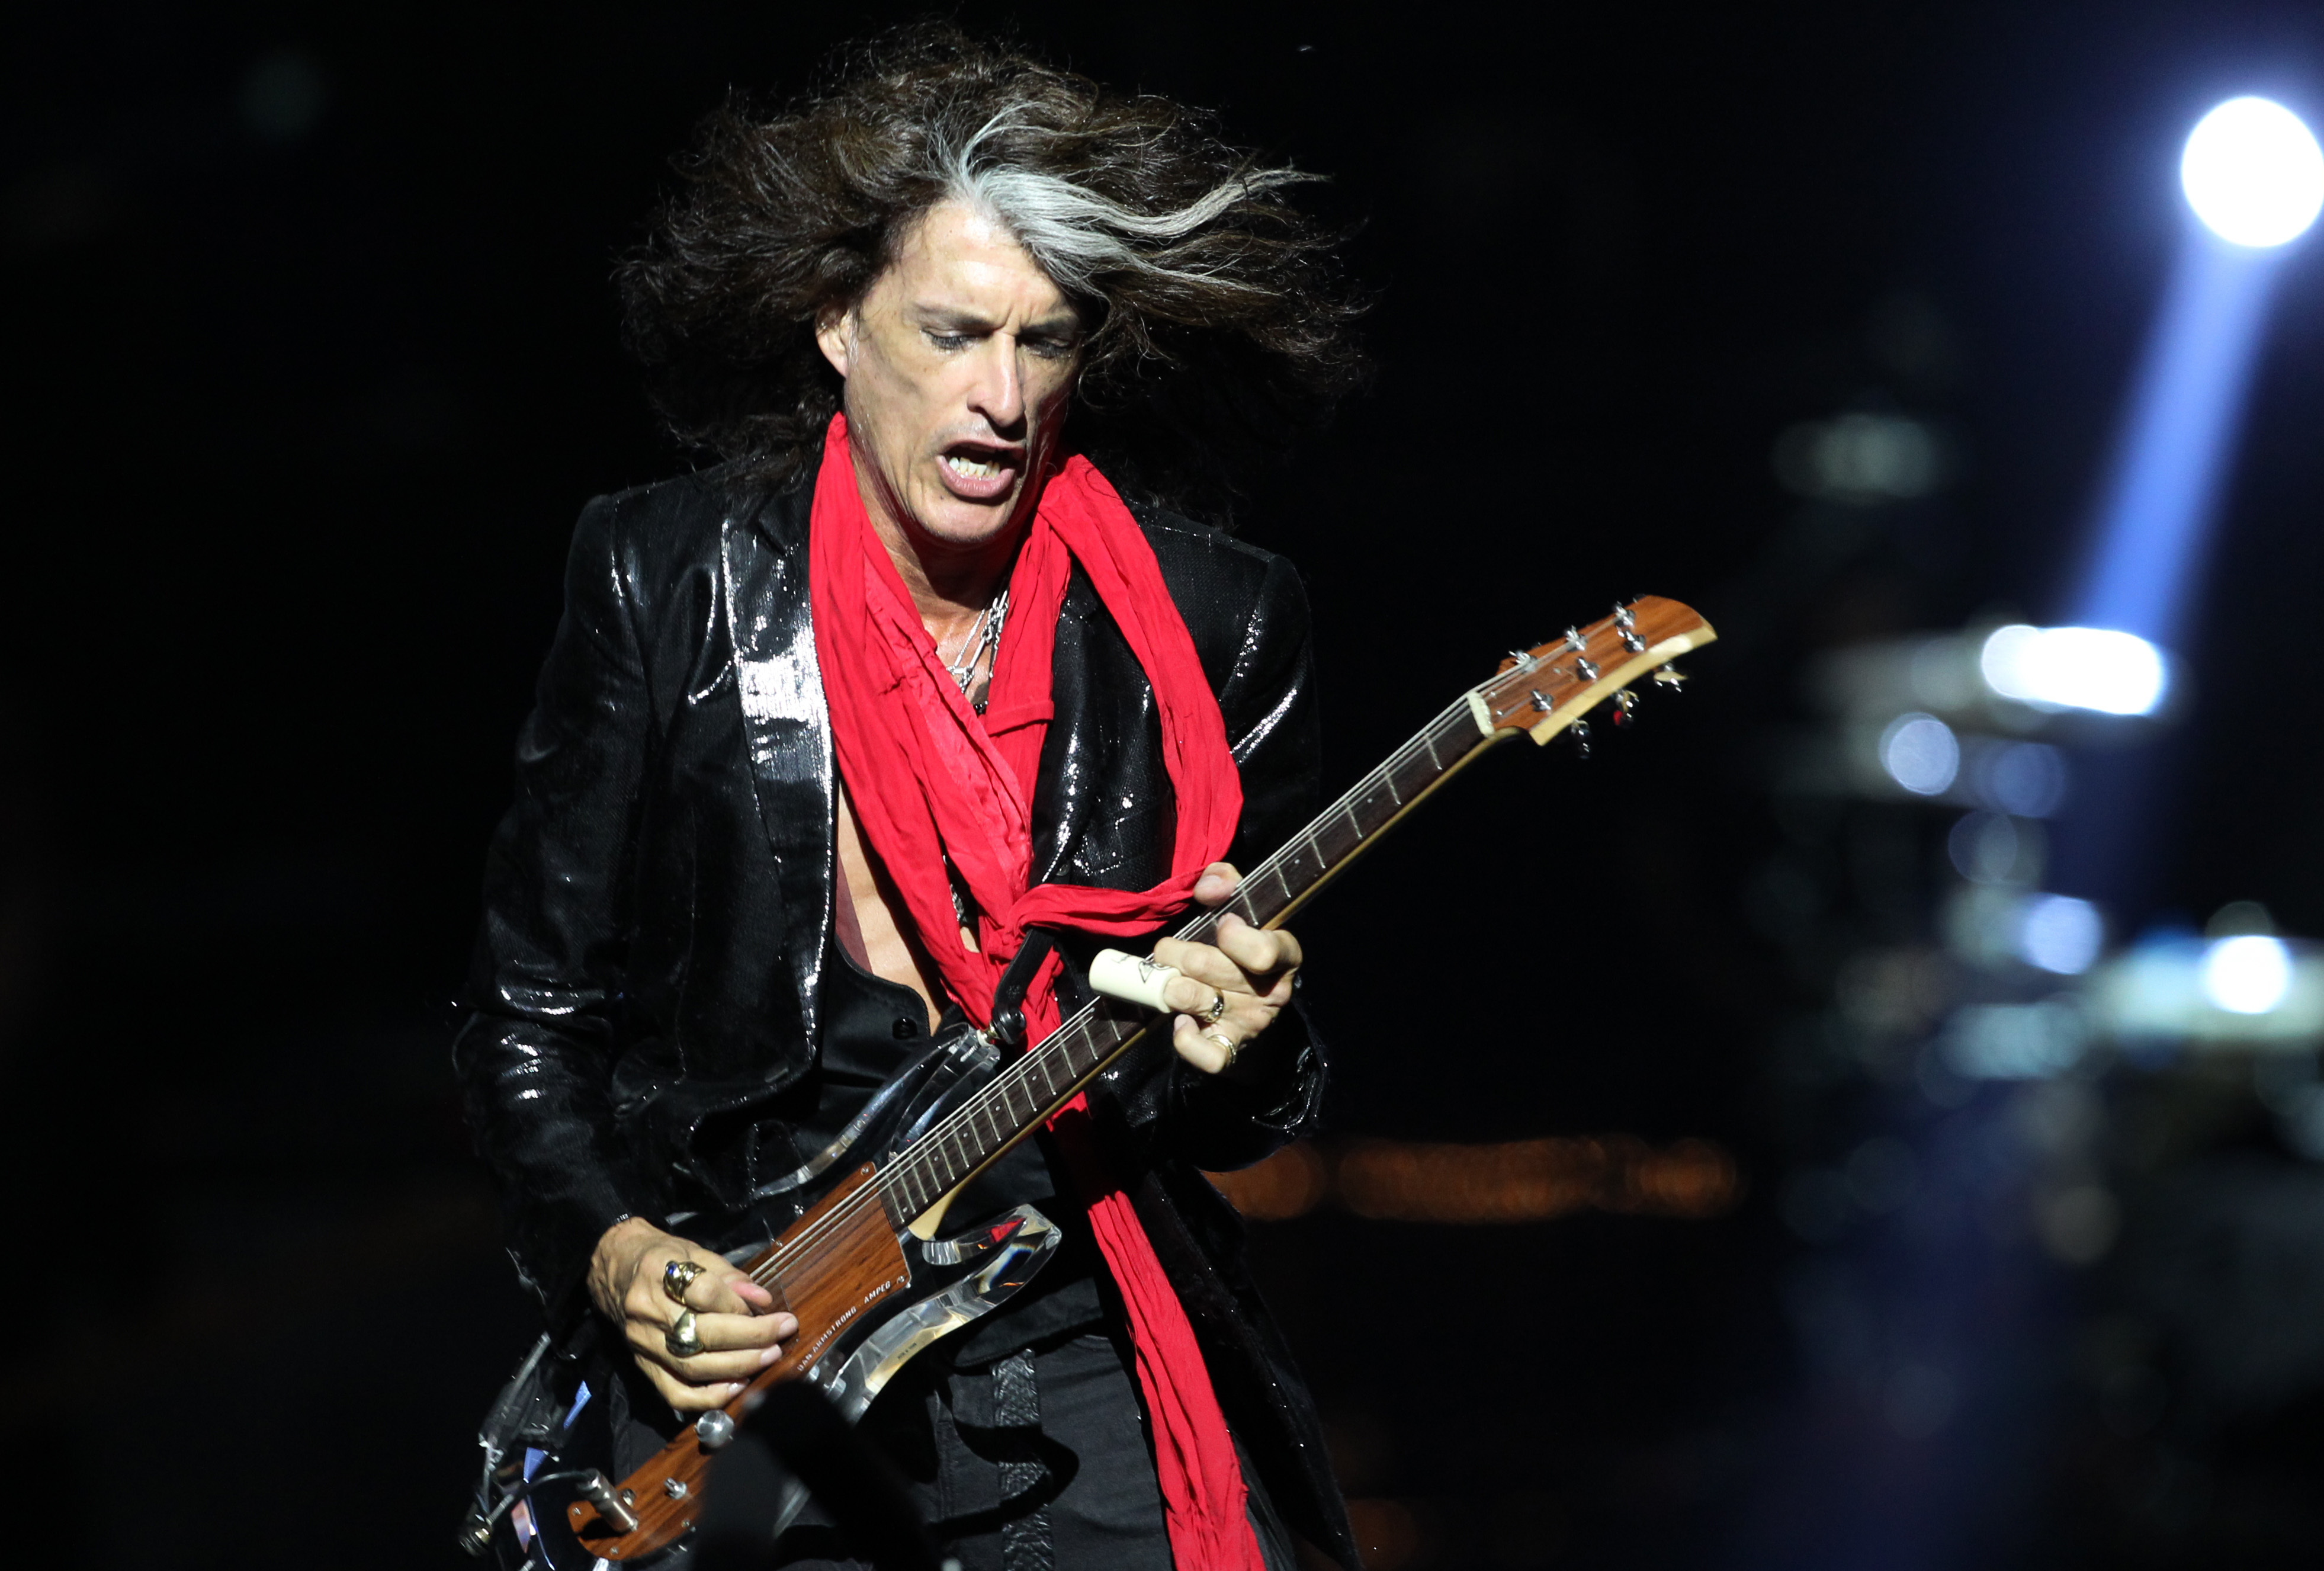 Joe Cooper Ford >> Aerosmith guitarist 'doing well' after leaving performance - The Blade